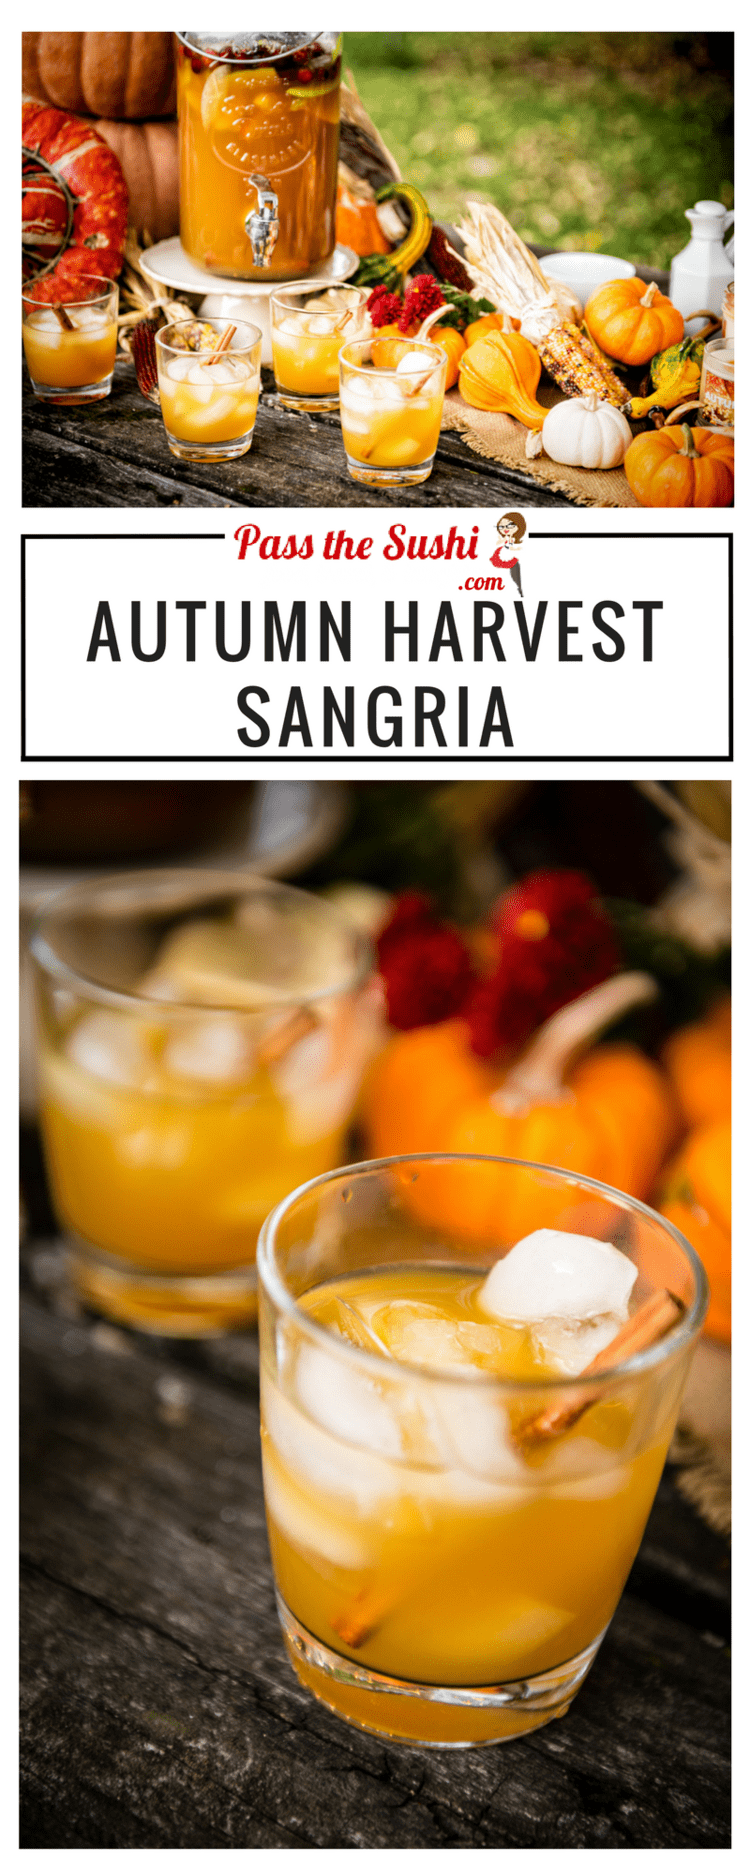 Autumn Harvest Sangria - a crisp blend of hard cider, seasonal fruit, whiskey and wine this sangria is a perfect seasonal cocktail. Recipe at PasstheSushi.com